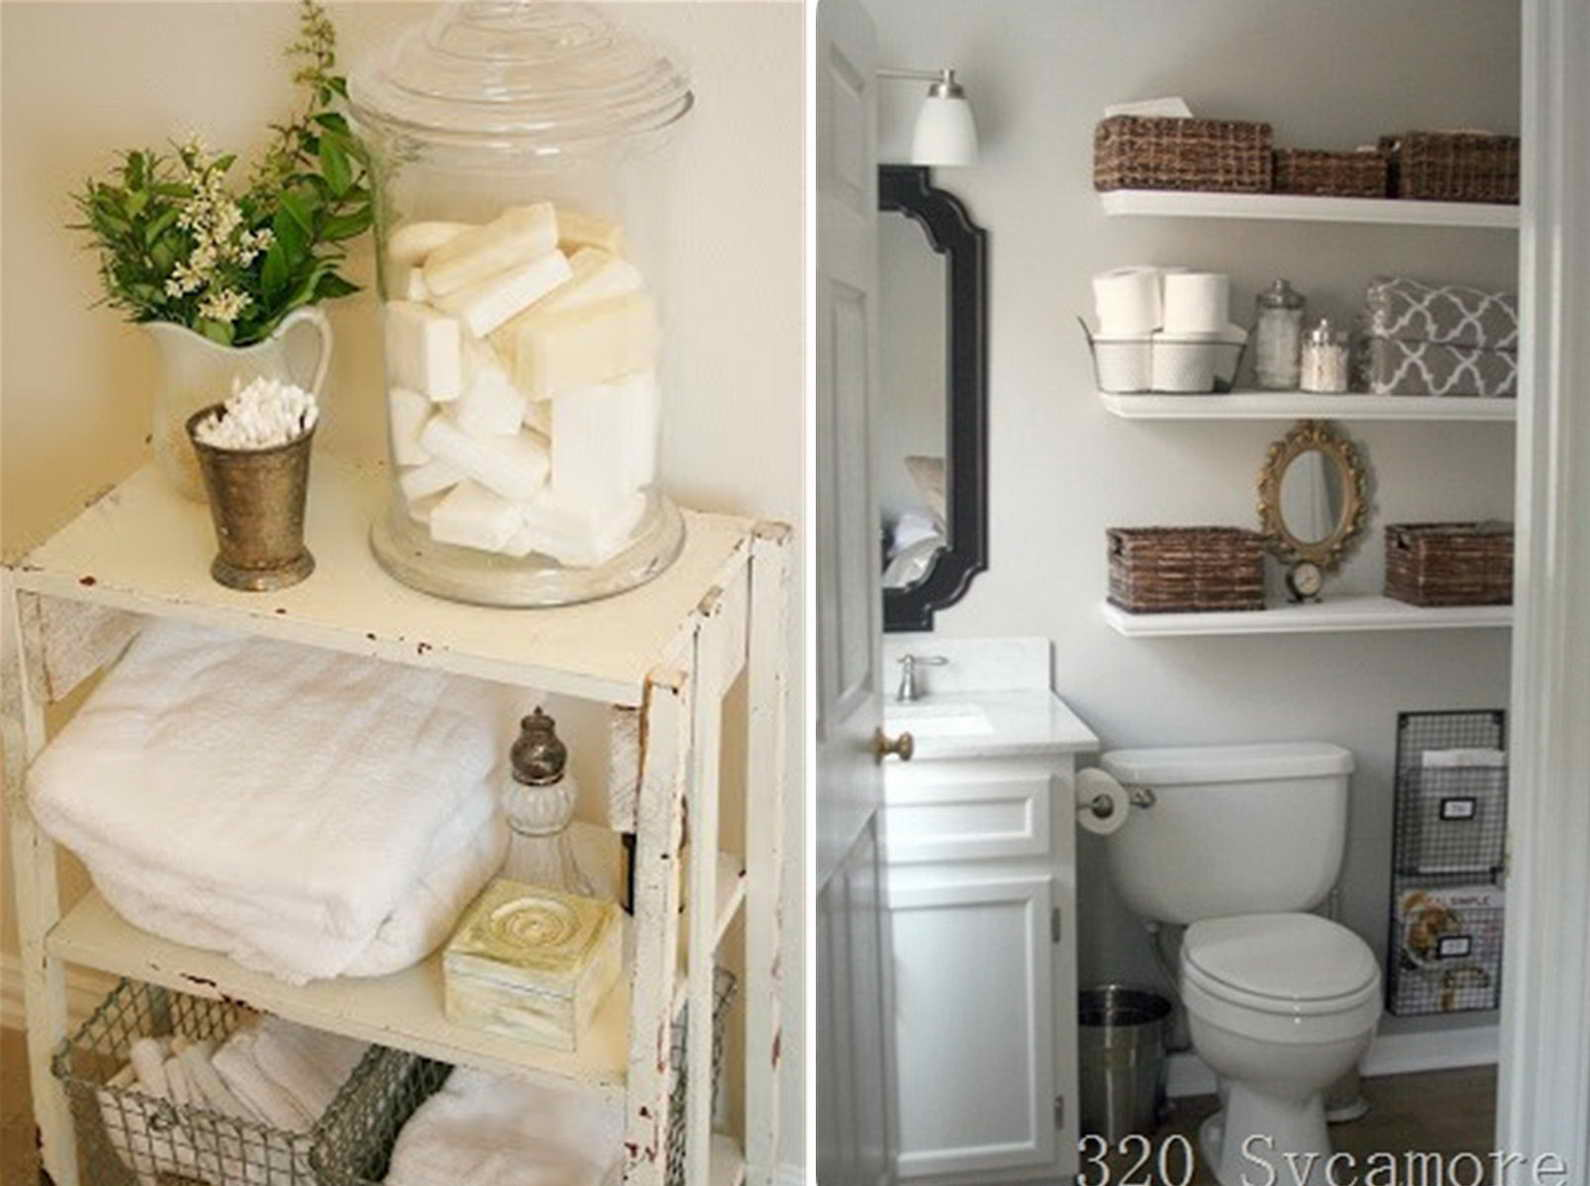 small-vintage-bathroom-ideas-6_resize